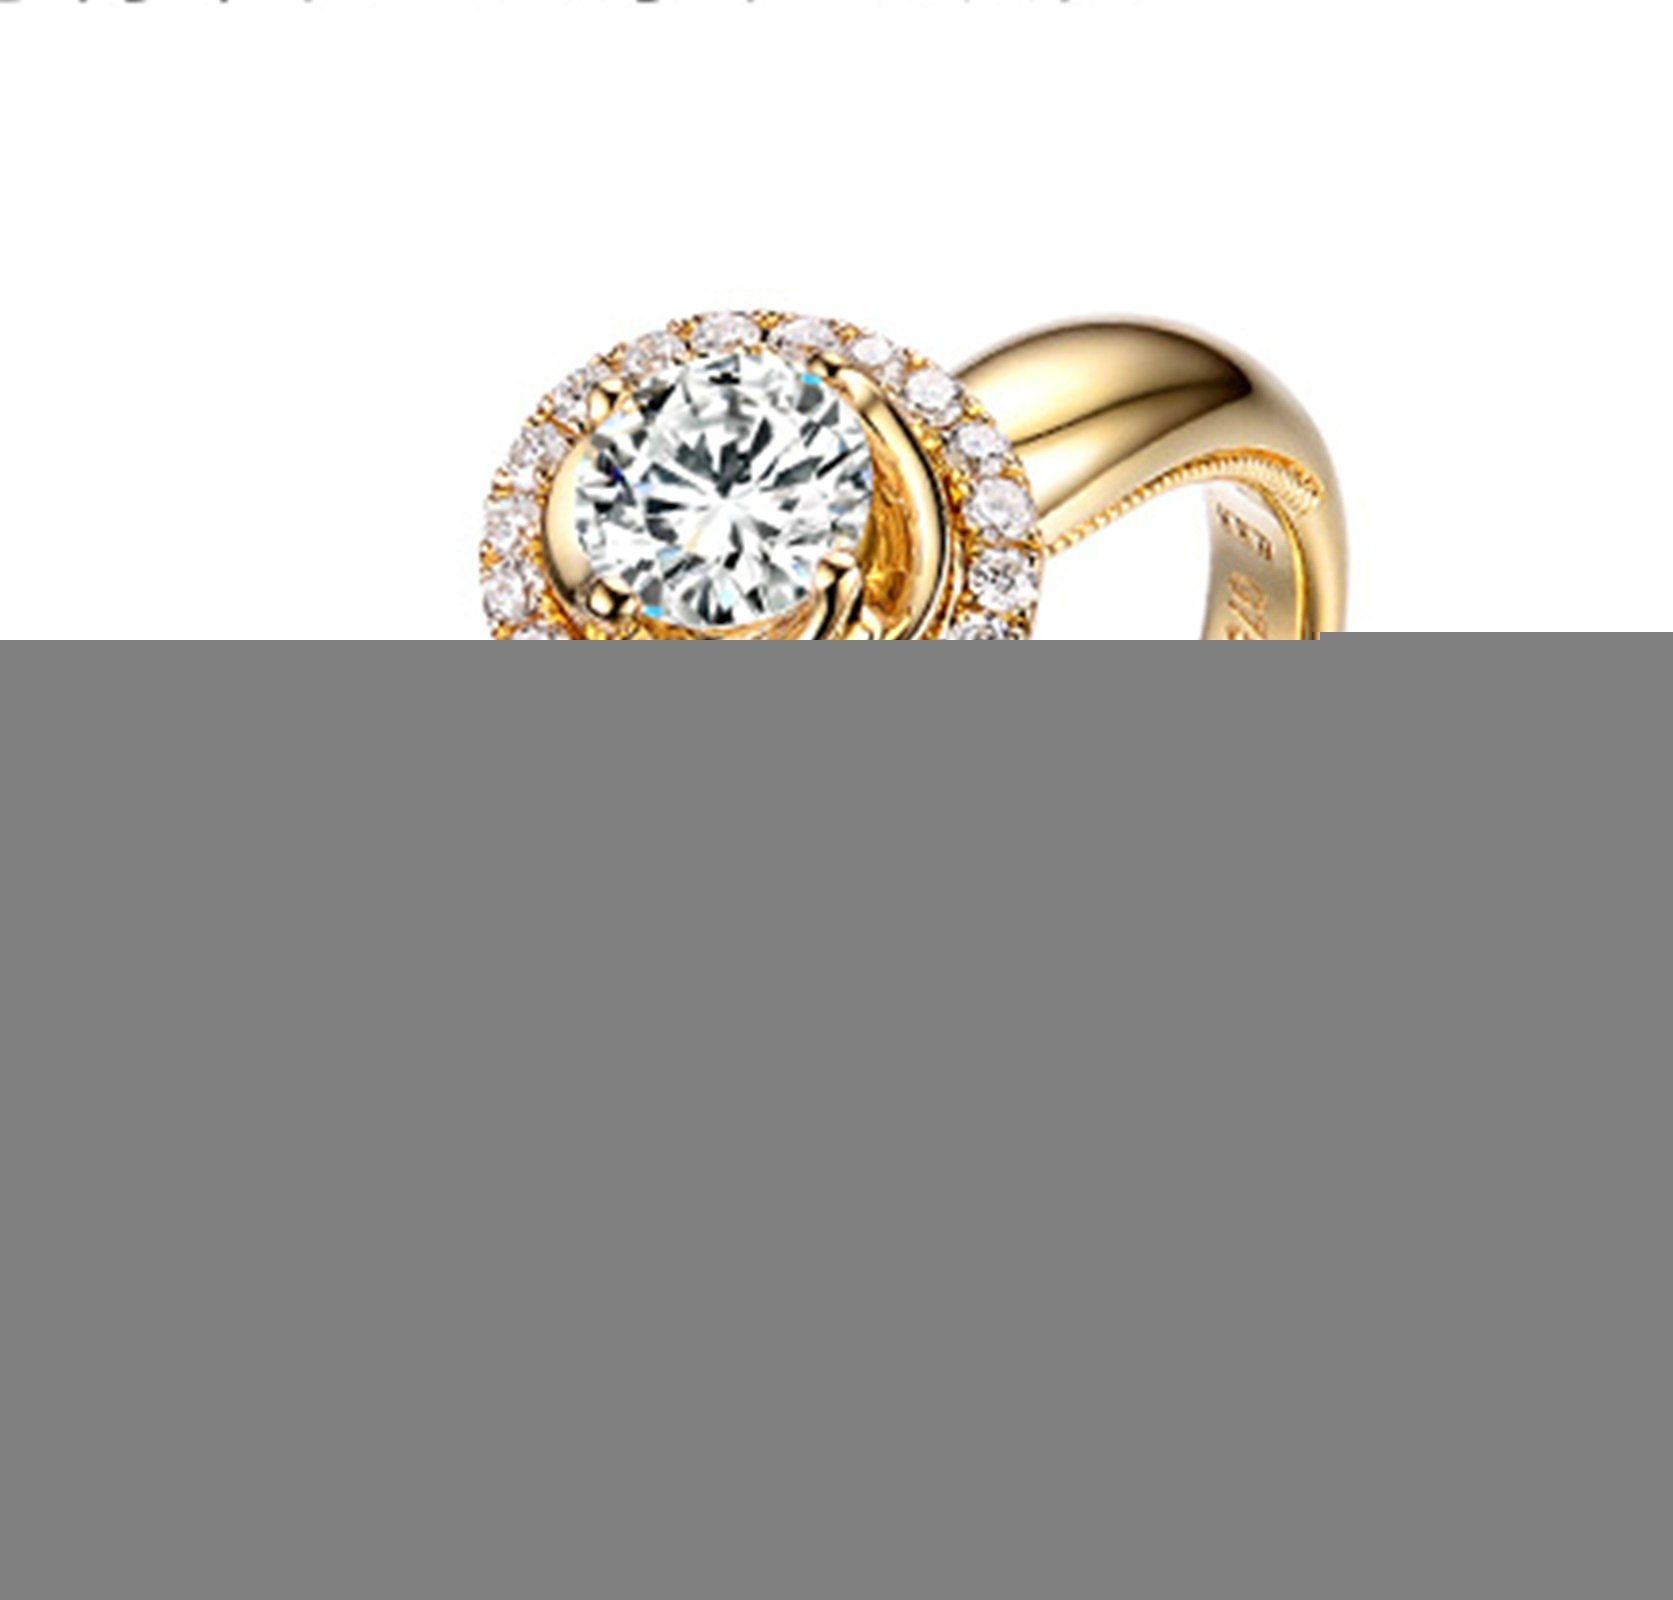 Gnzoe Rose Gold Women Wedding Rings Solitaire Promise Rings Crown Flowers Yellow with White Blue 0.5ct Diamond Size 5